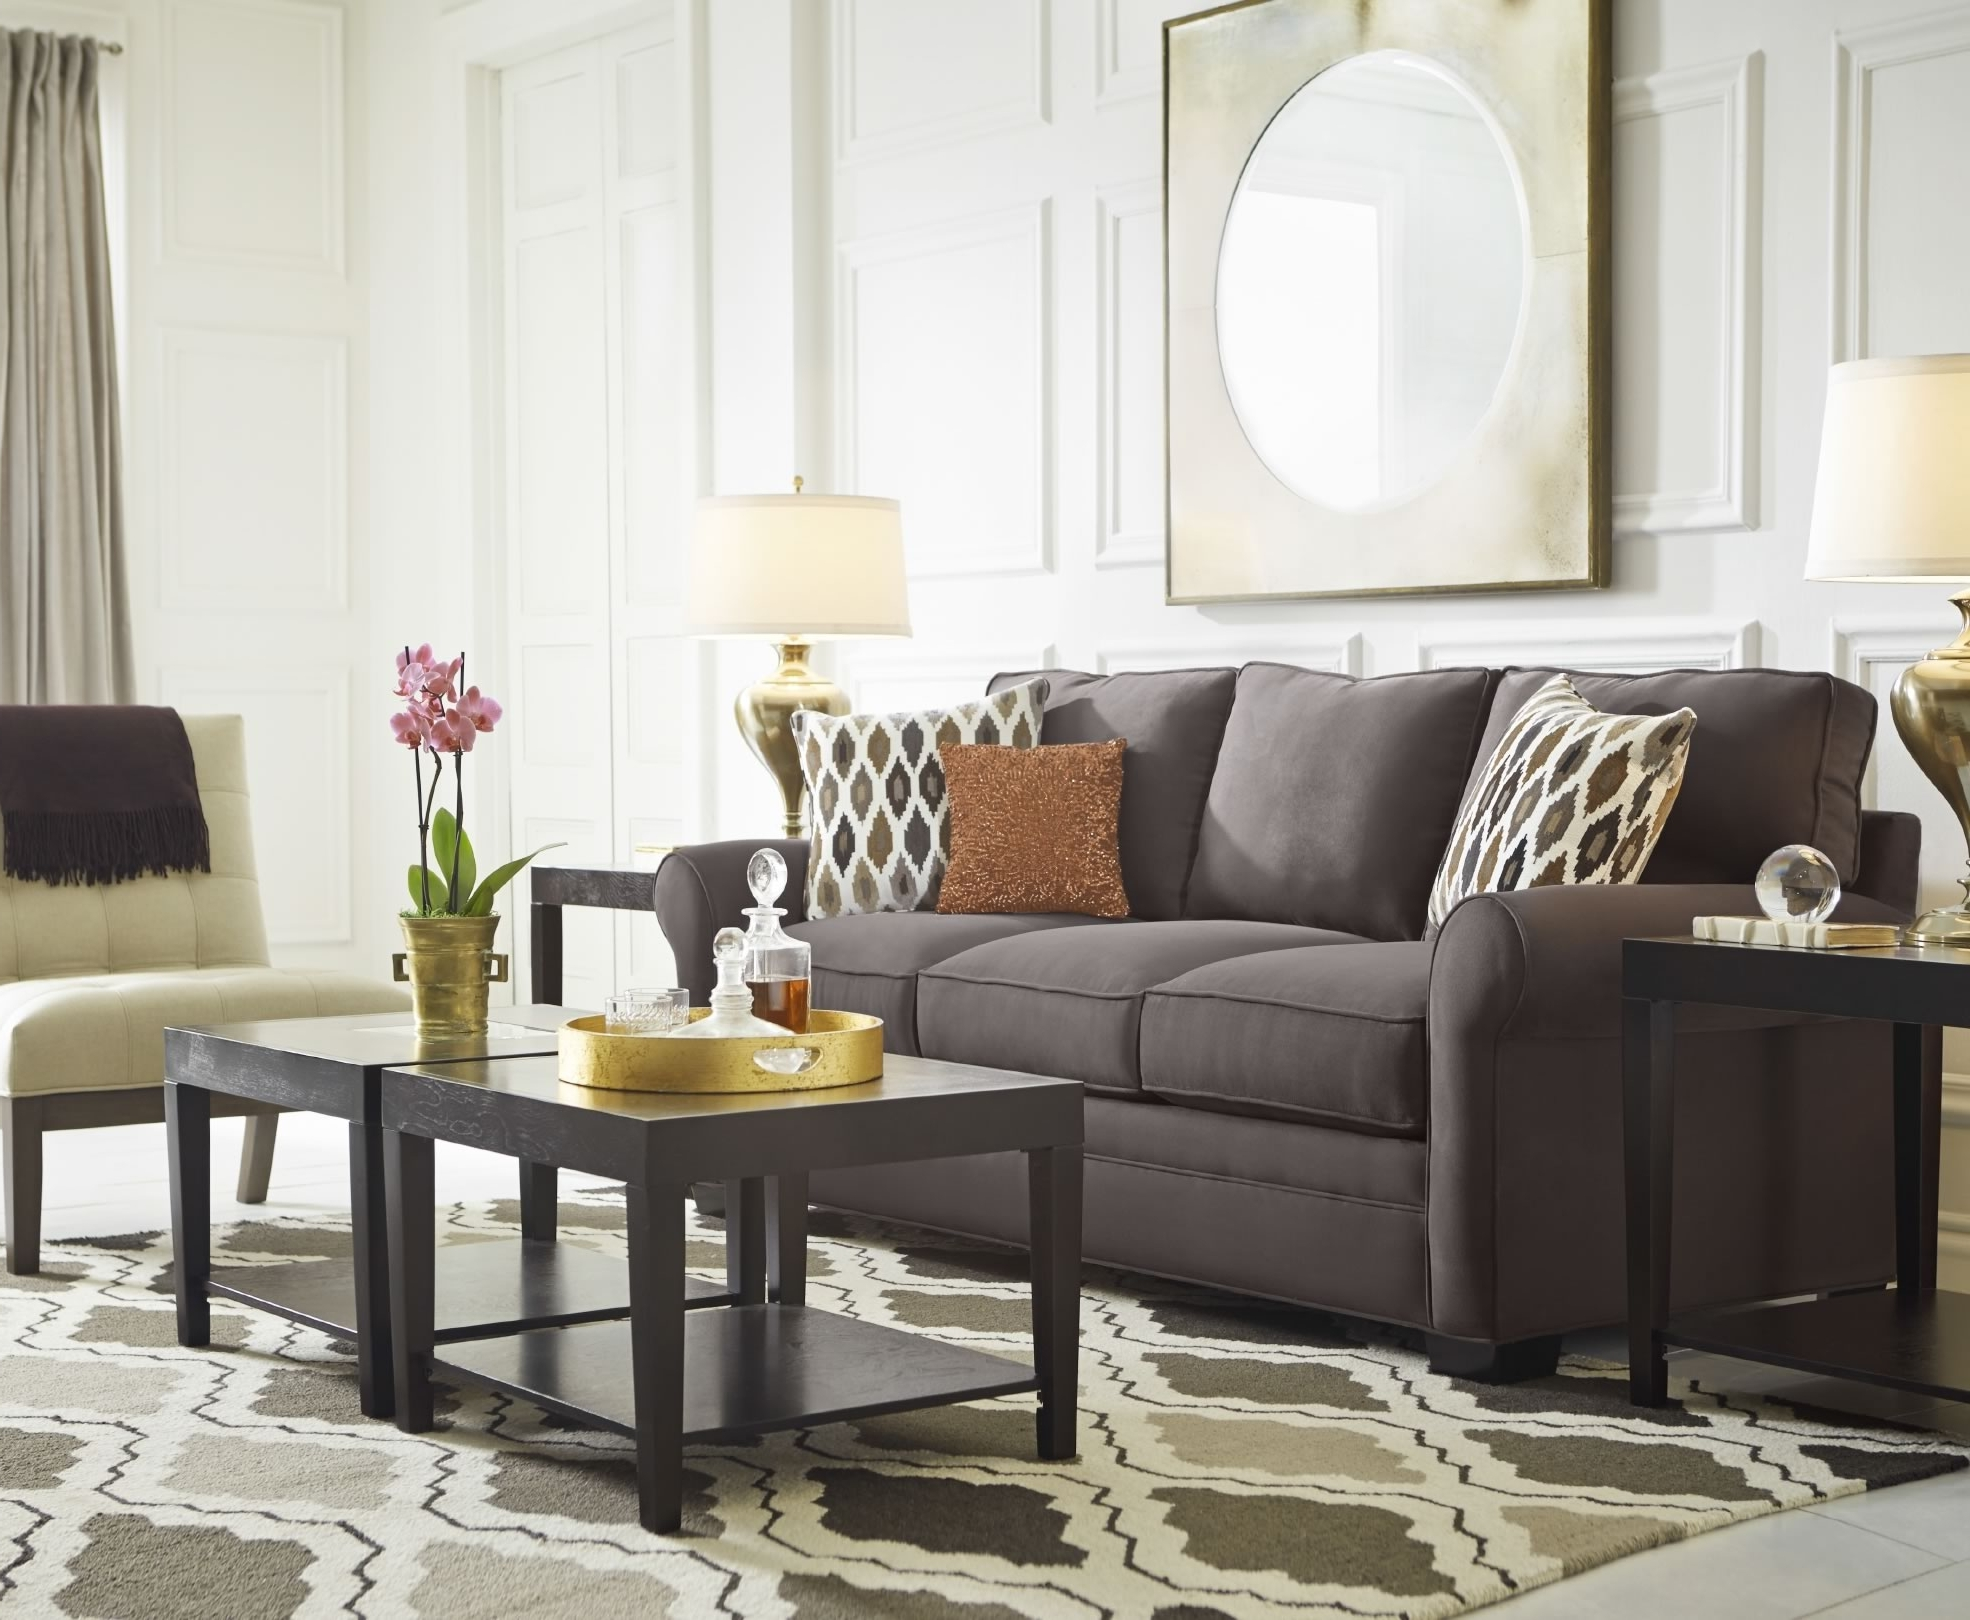 Sectional Sofas At Rooms To Go Regarding Well Known Rooms To Go Discount Sofa Guide: Affordable Sofas & Couches (View 17 of 20)